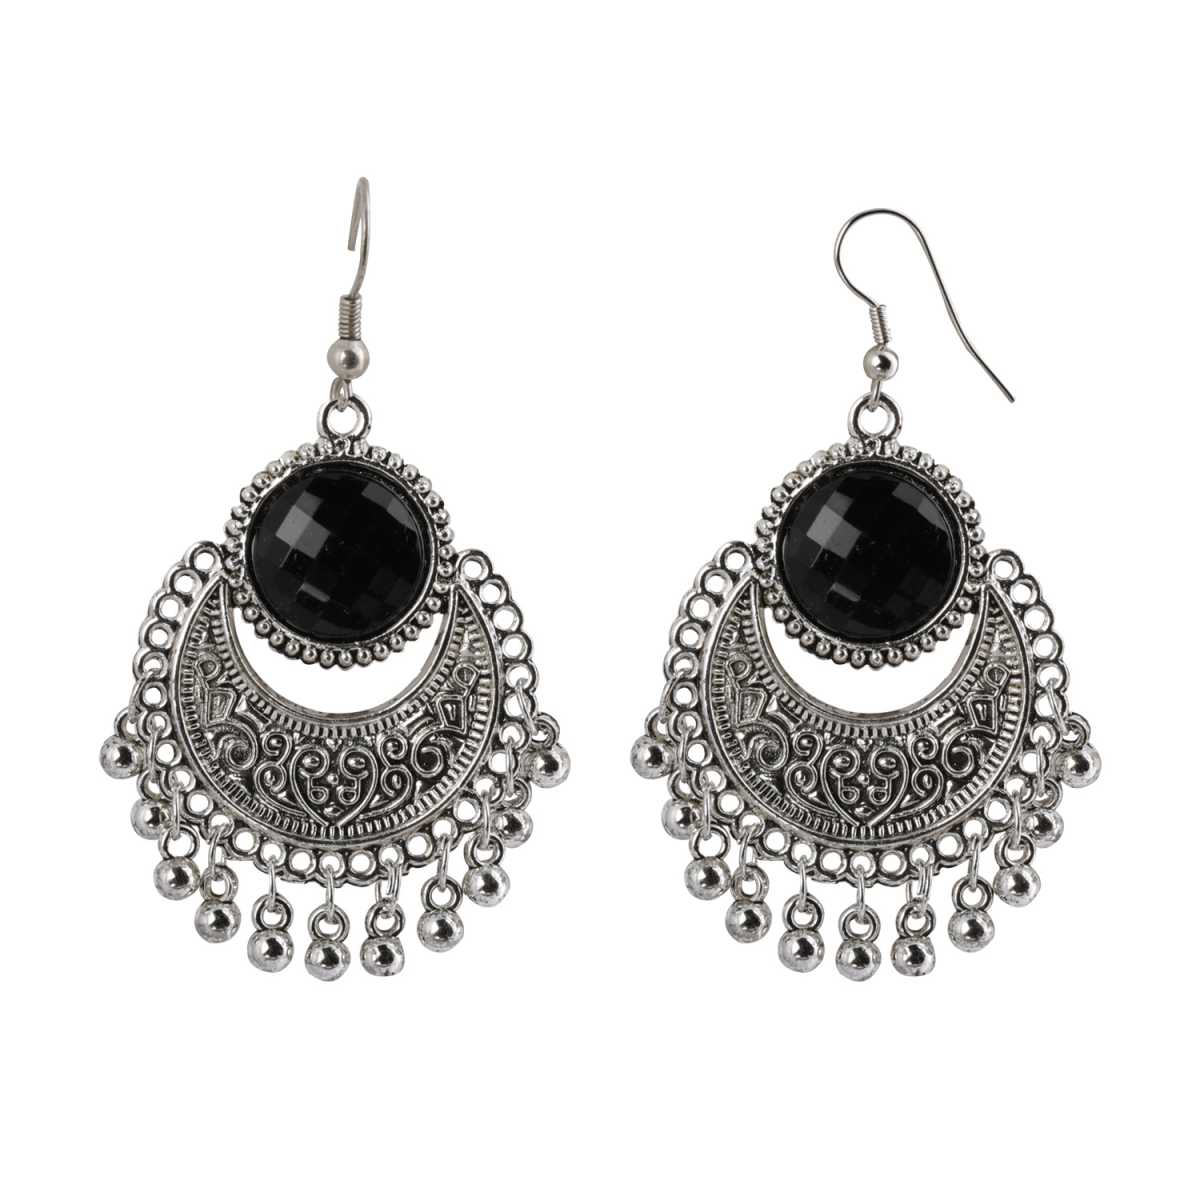 Silver Shine Pretty Black Stone Chandbali Small Dangler Earrings for Women